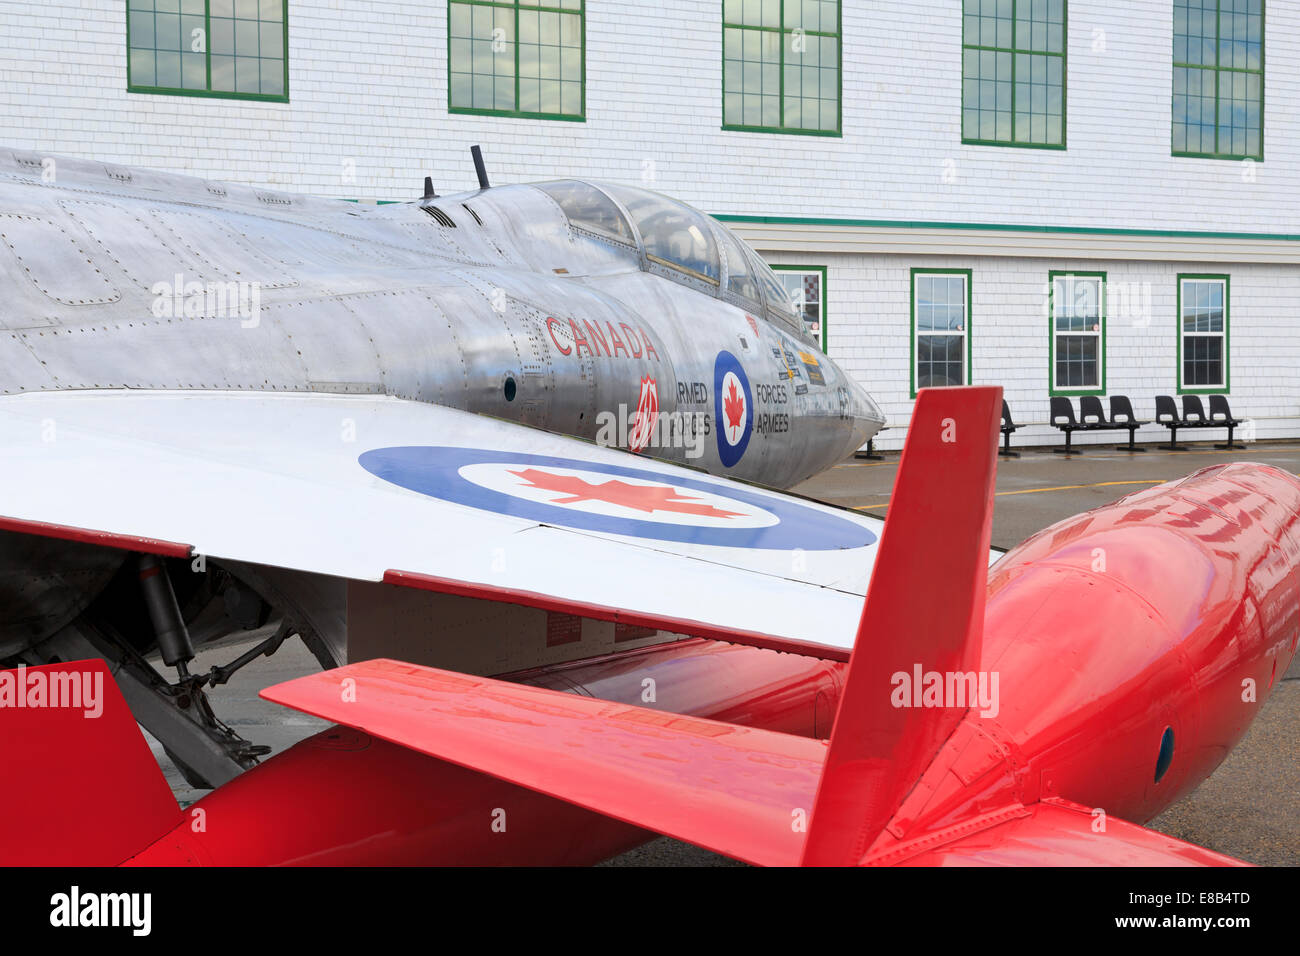 Starfighter, Alberta Aviation Museum, Edmonton, Alberta, Canada - Stock Image